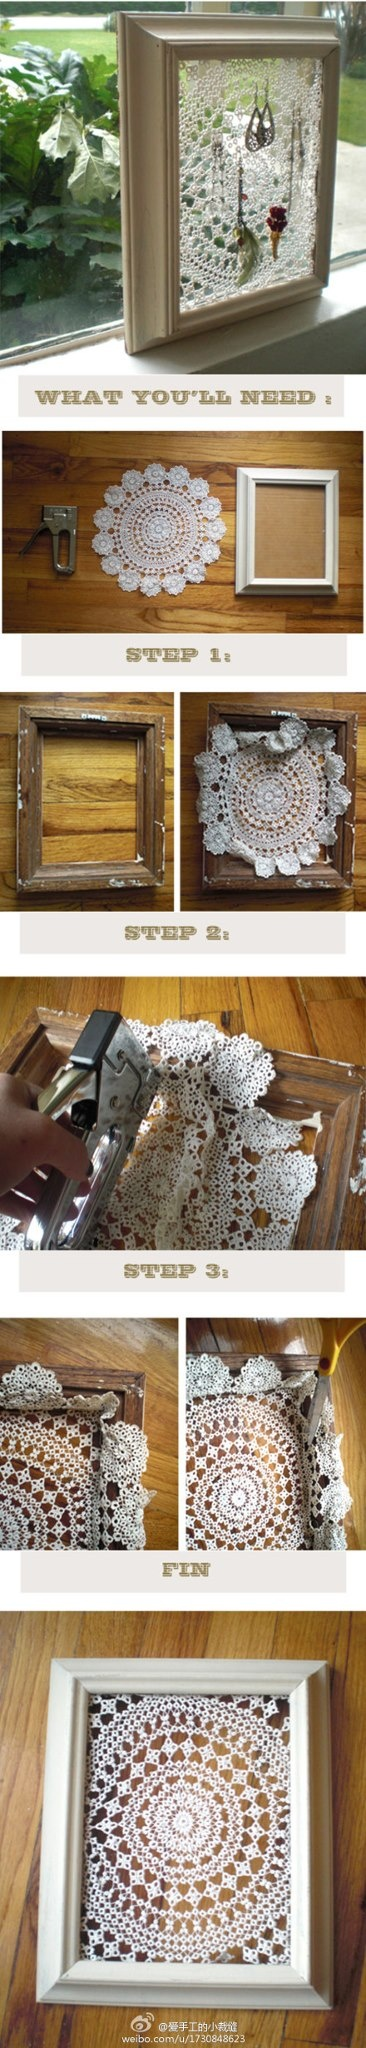 re-purposed lace doilies/lace & frame...I don't actually like the earring idea...BUT I do like the simple idea of old doilies/lace as art pieces